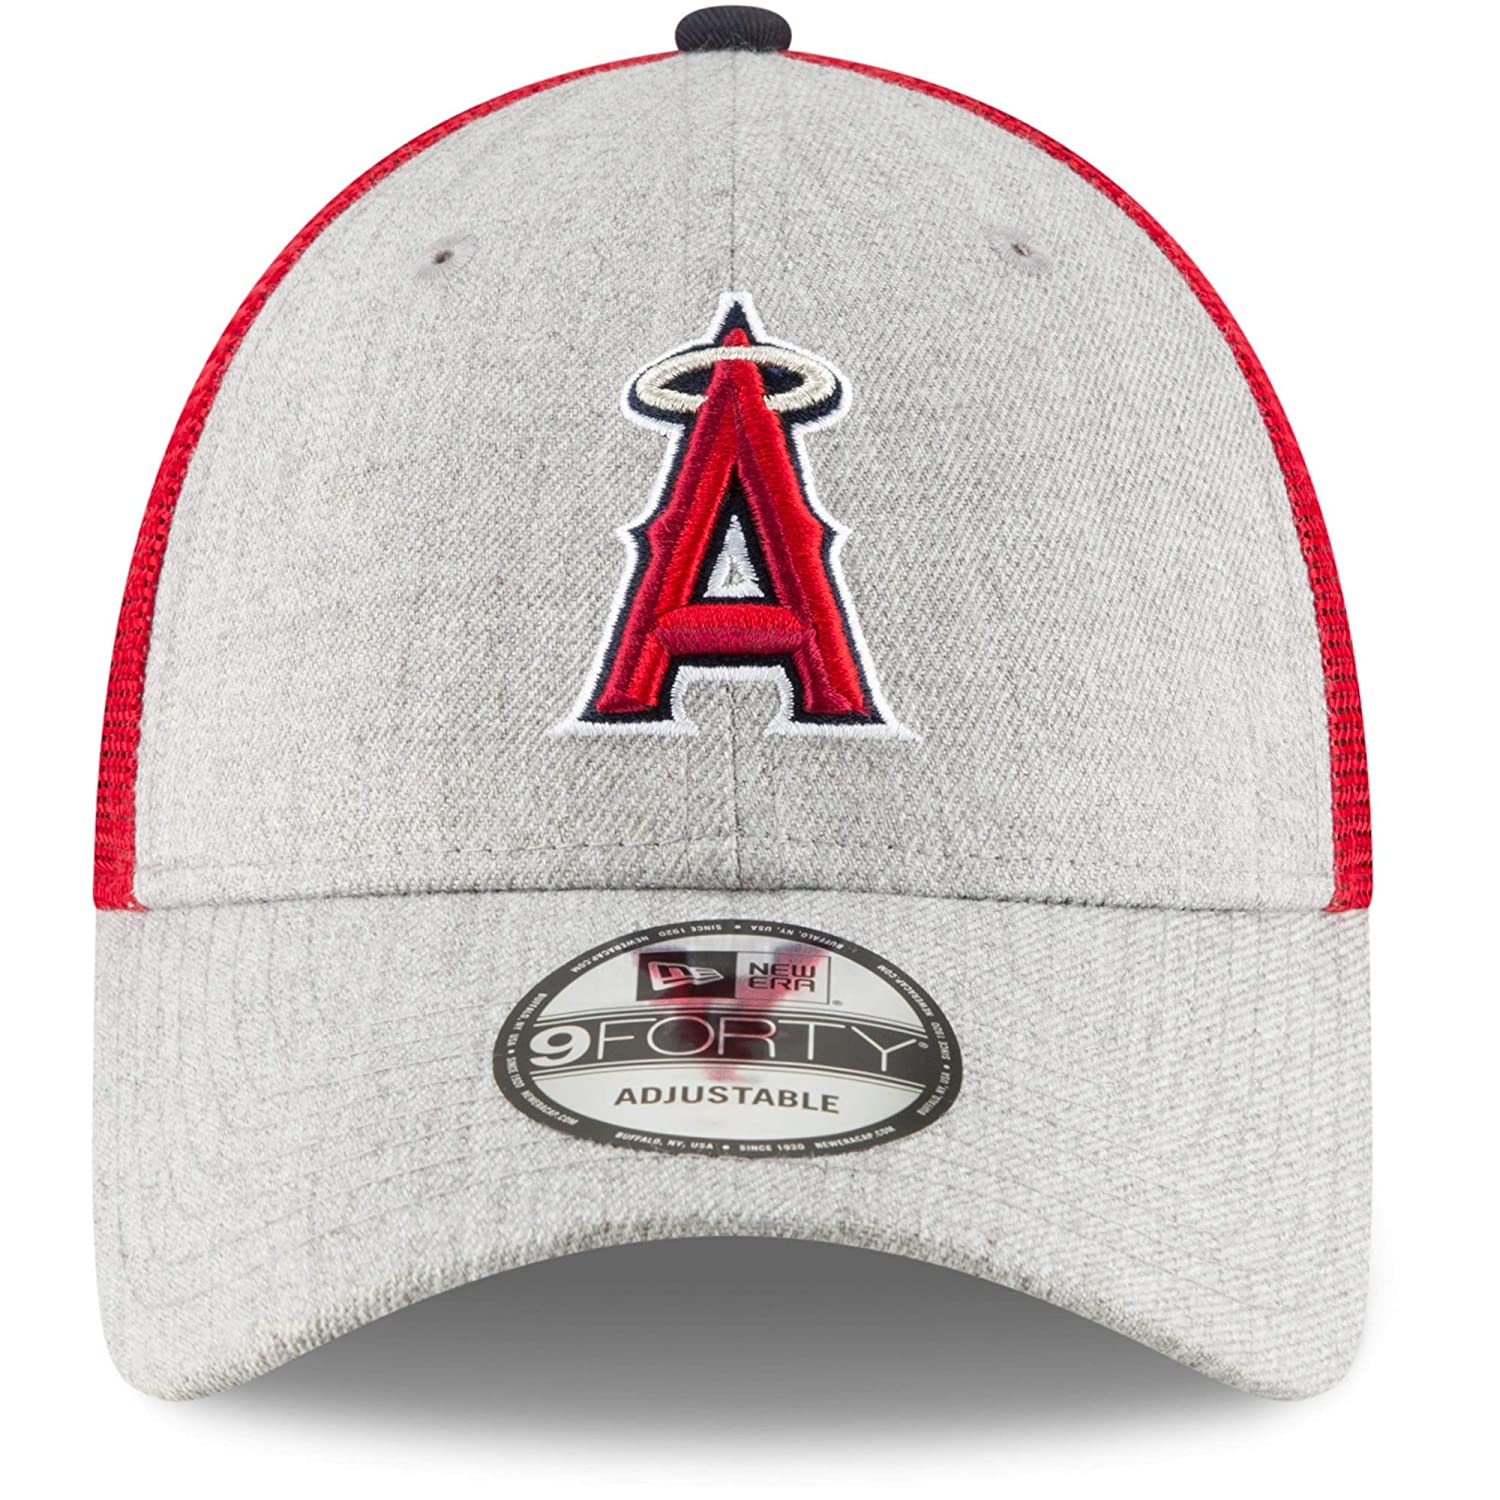 ecddff35566e1 Amazon.com   New Era MLB Turn Trucker 9FORTY Adjustable Snapback (Los  Angeles Angels)   Sports   Outdoors